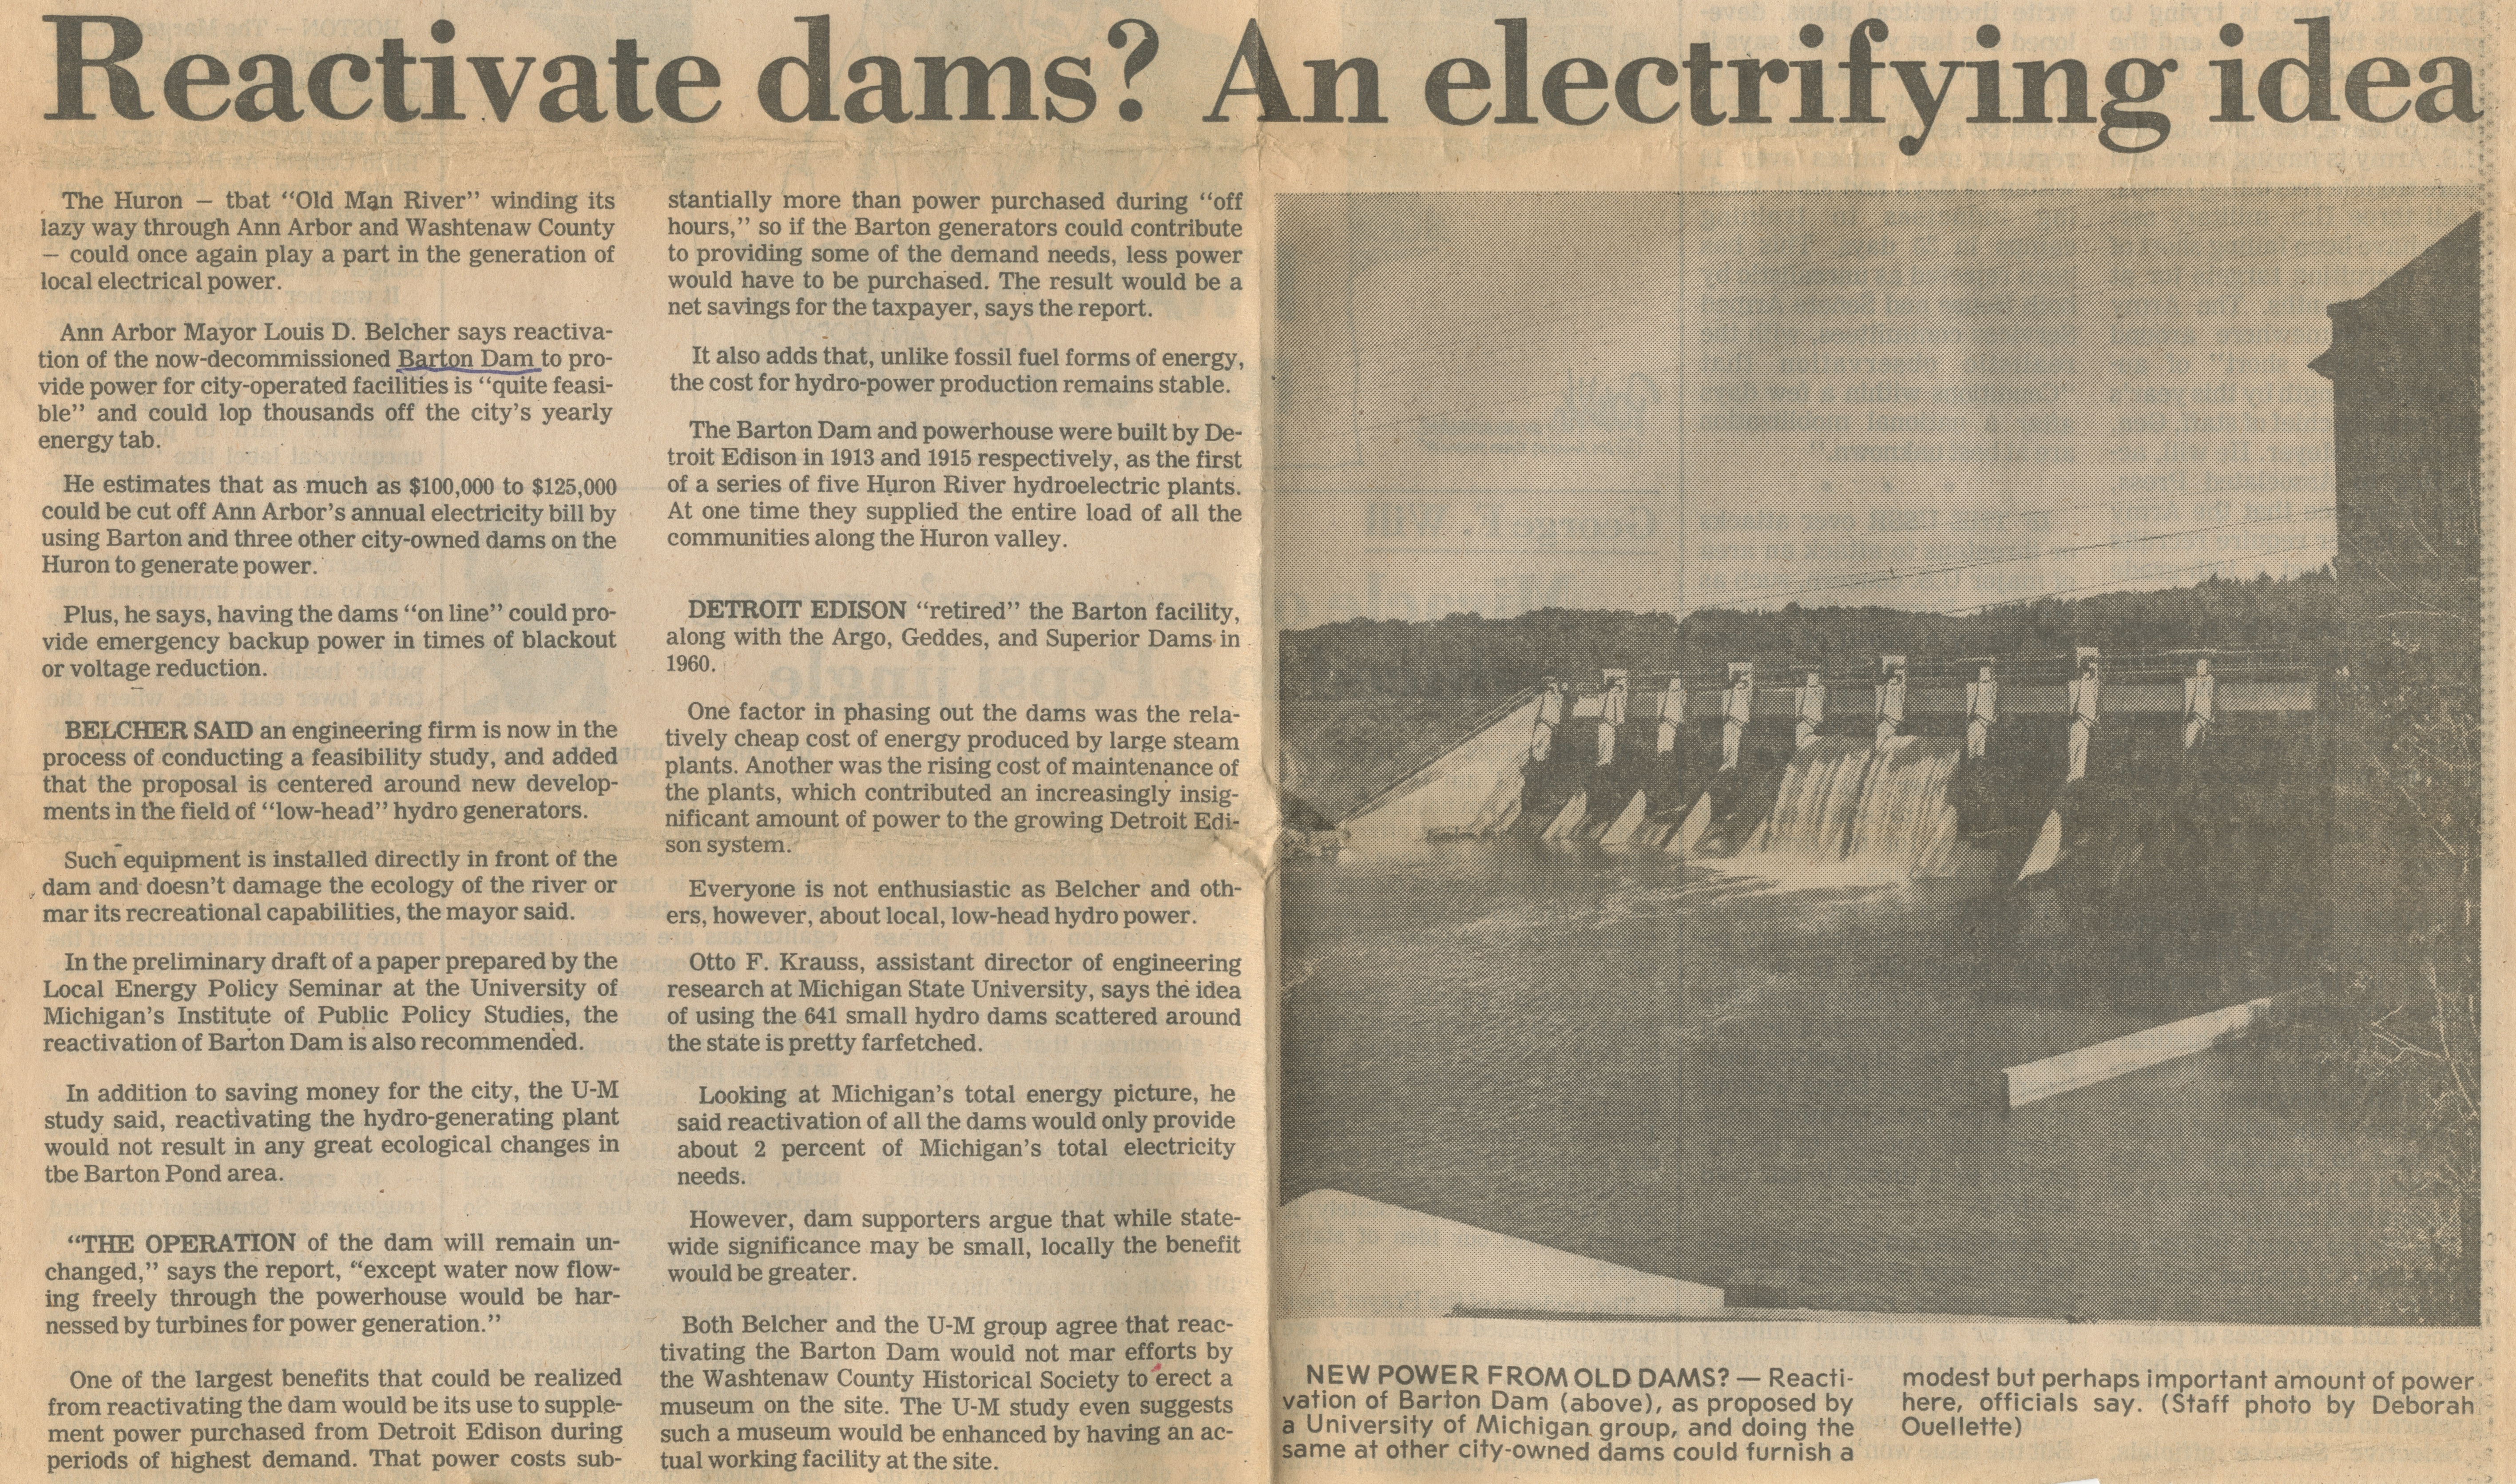 Reactivate Dams? An Electrifying Idea image